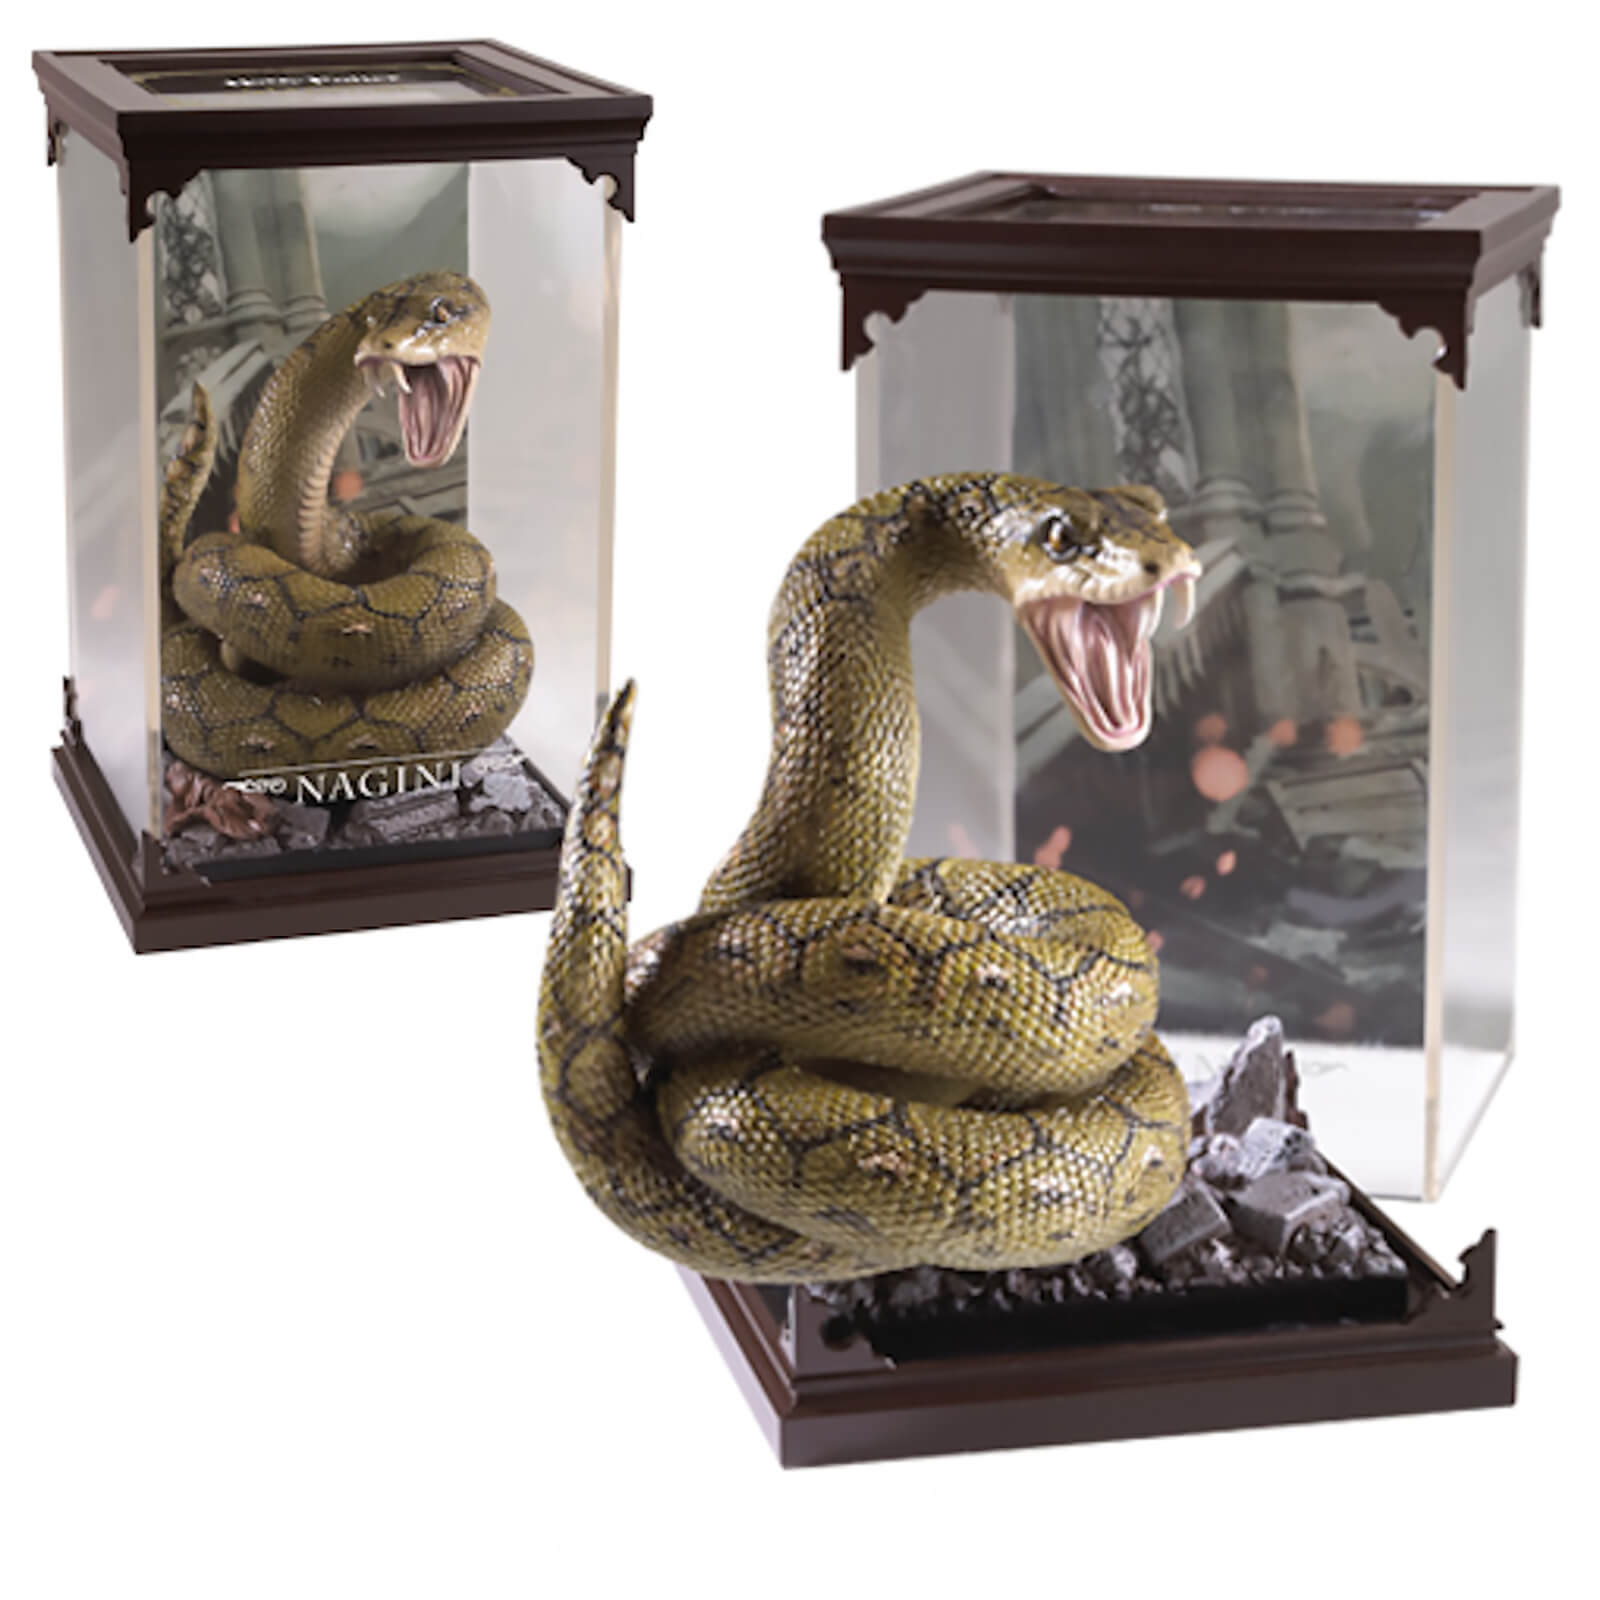 Harry Potter Magical Creatures Nagini Sculpture